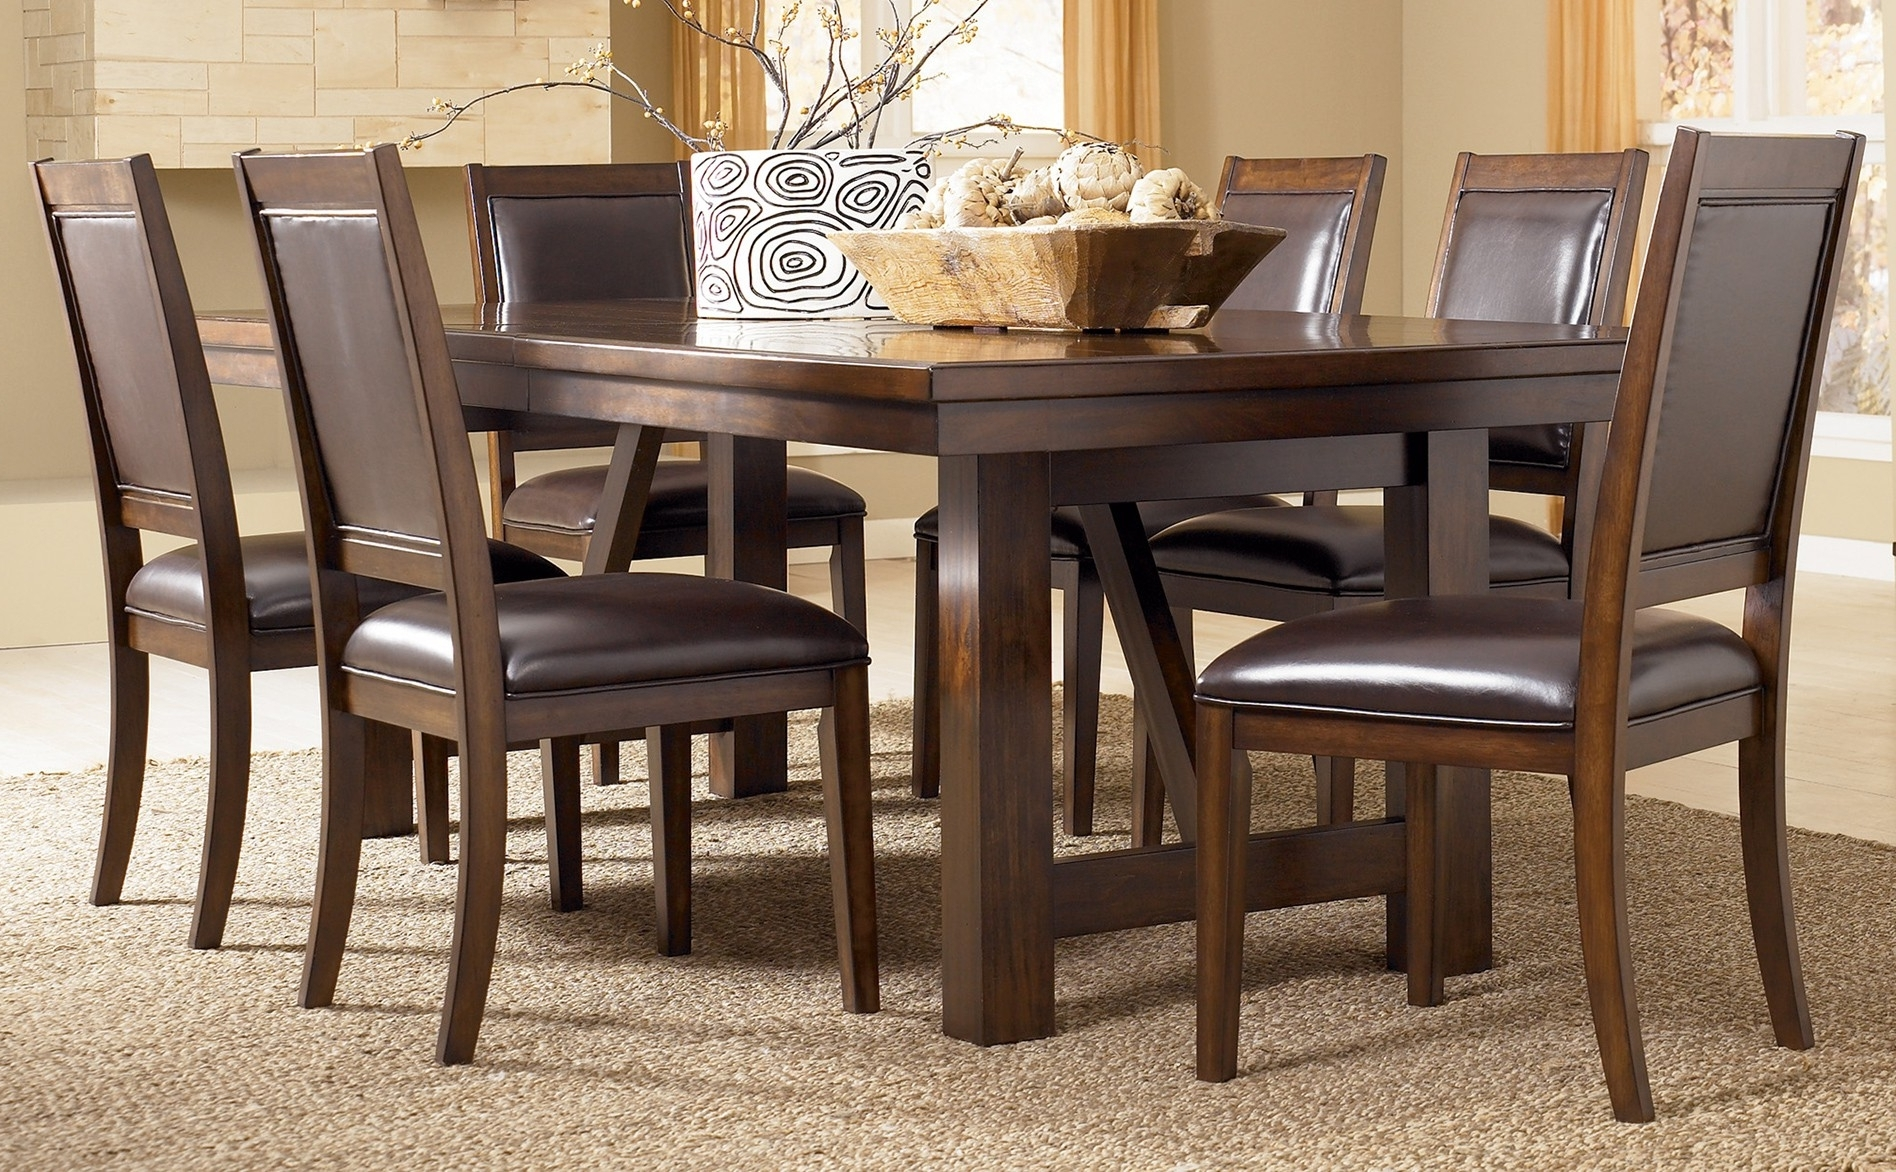 Current Emejing Ashleys Furniture Dining Tables Photos – Liltigertoo Throughout Sofa Chairs With Dining Table (View 2 of 15)